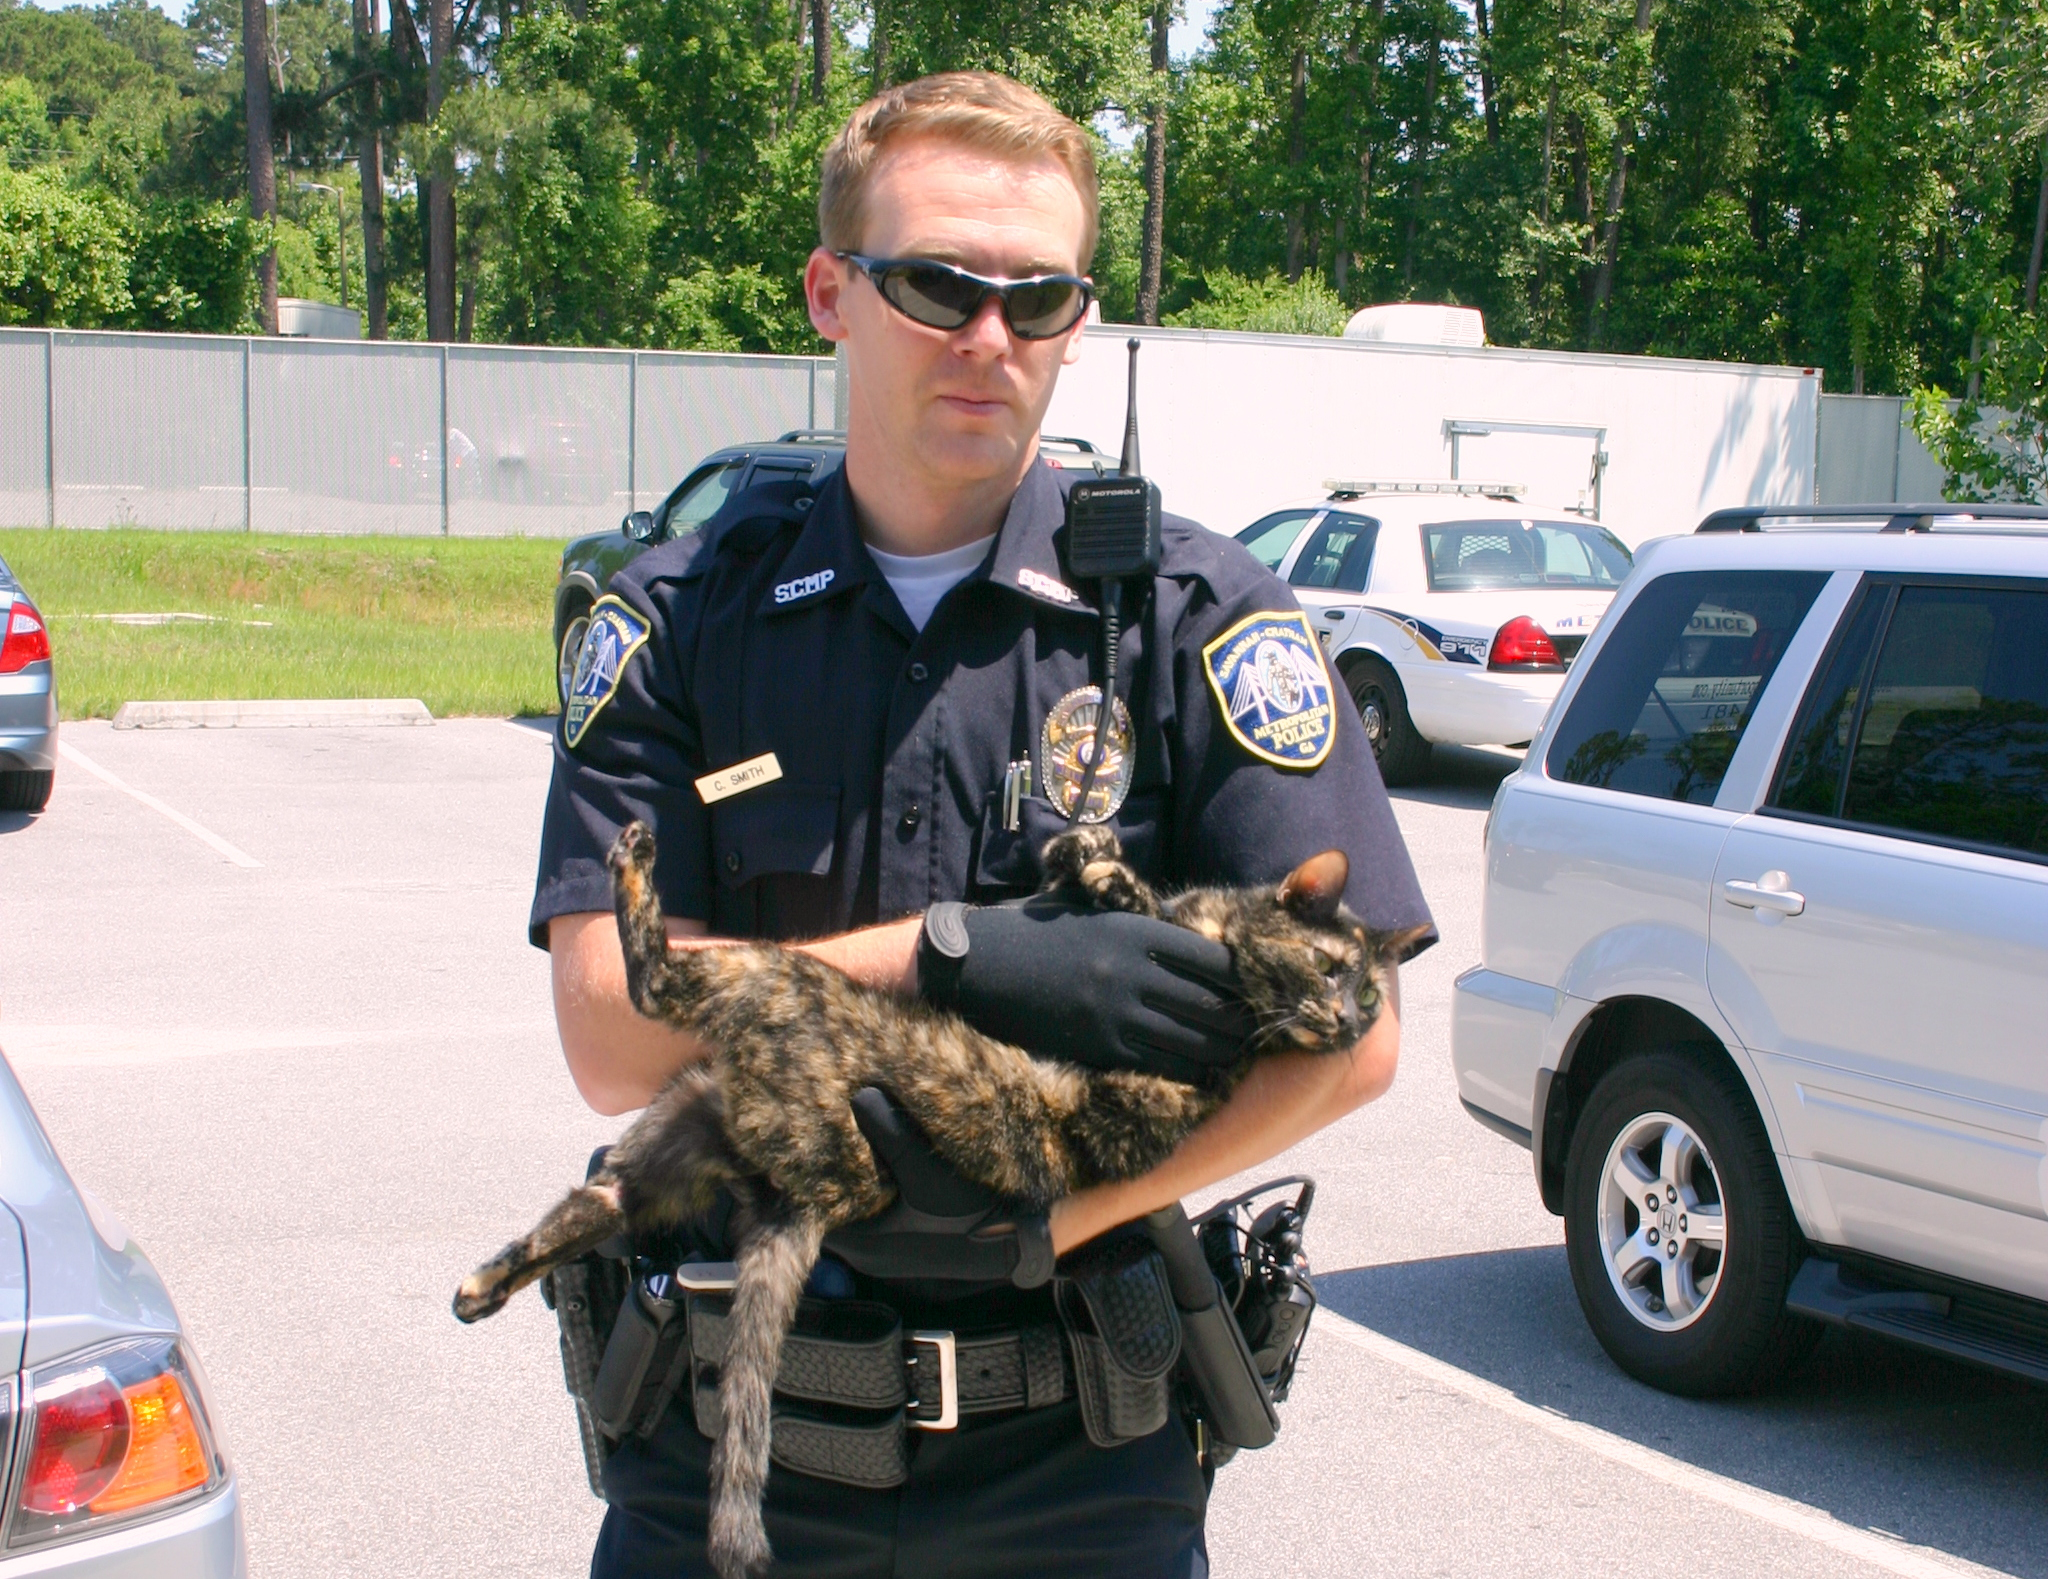 Ofc. Smith and injured cat